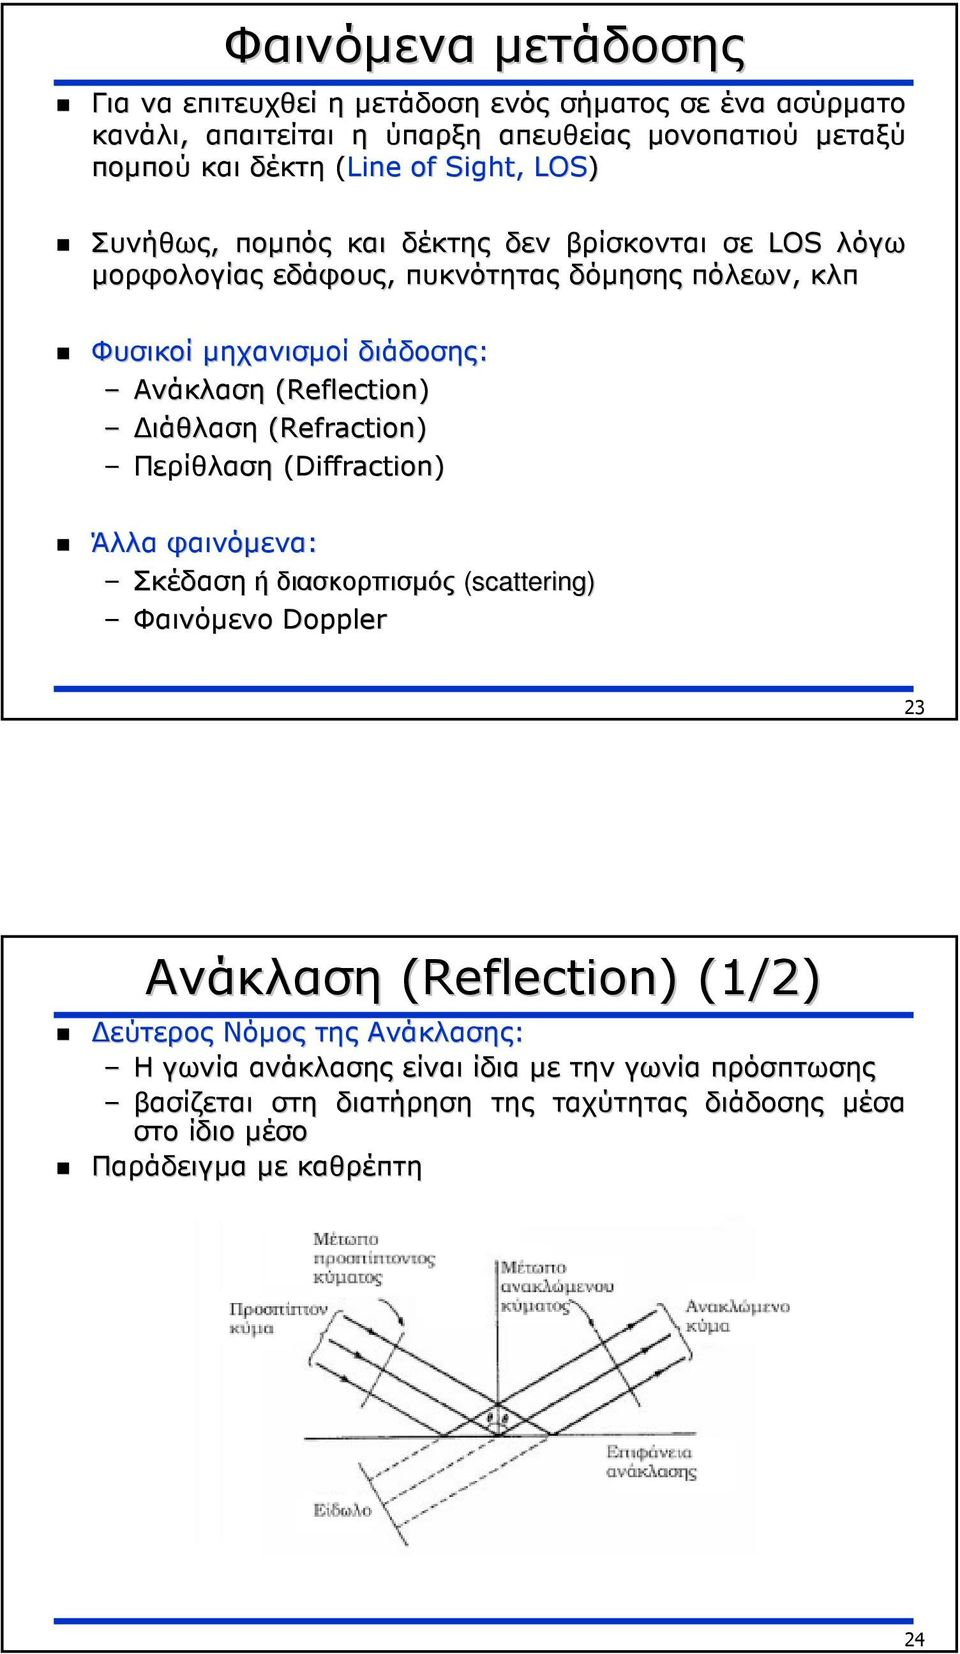 (Reflection) ιάθλαση (Refraction) Περίθλαση (Diffraction) Άλλα φαινόµενα: Σκέδαση ή διασκορπισµός (scattering) Φαινόµενο Doppler 23 Ανάκλαση (Reflection) (1/2)